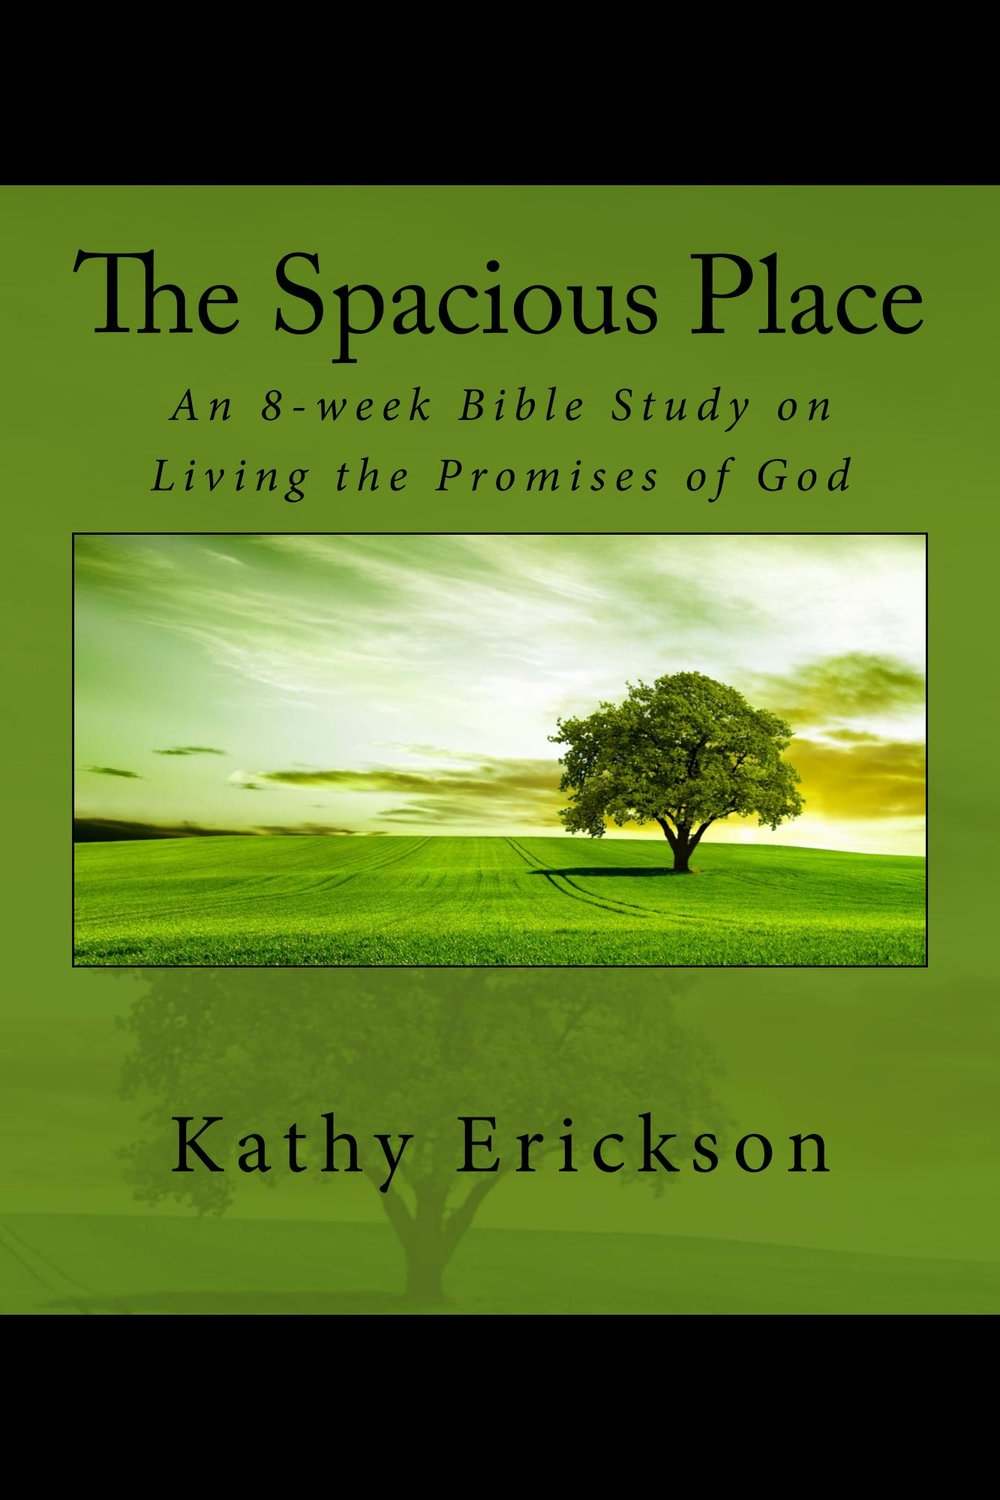 The_Spacious_Place_Cover_for_Kindle.jpg